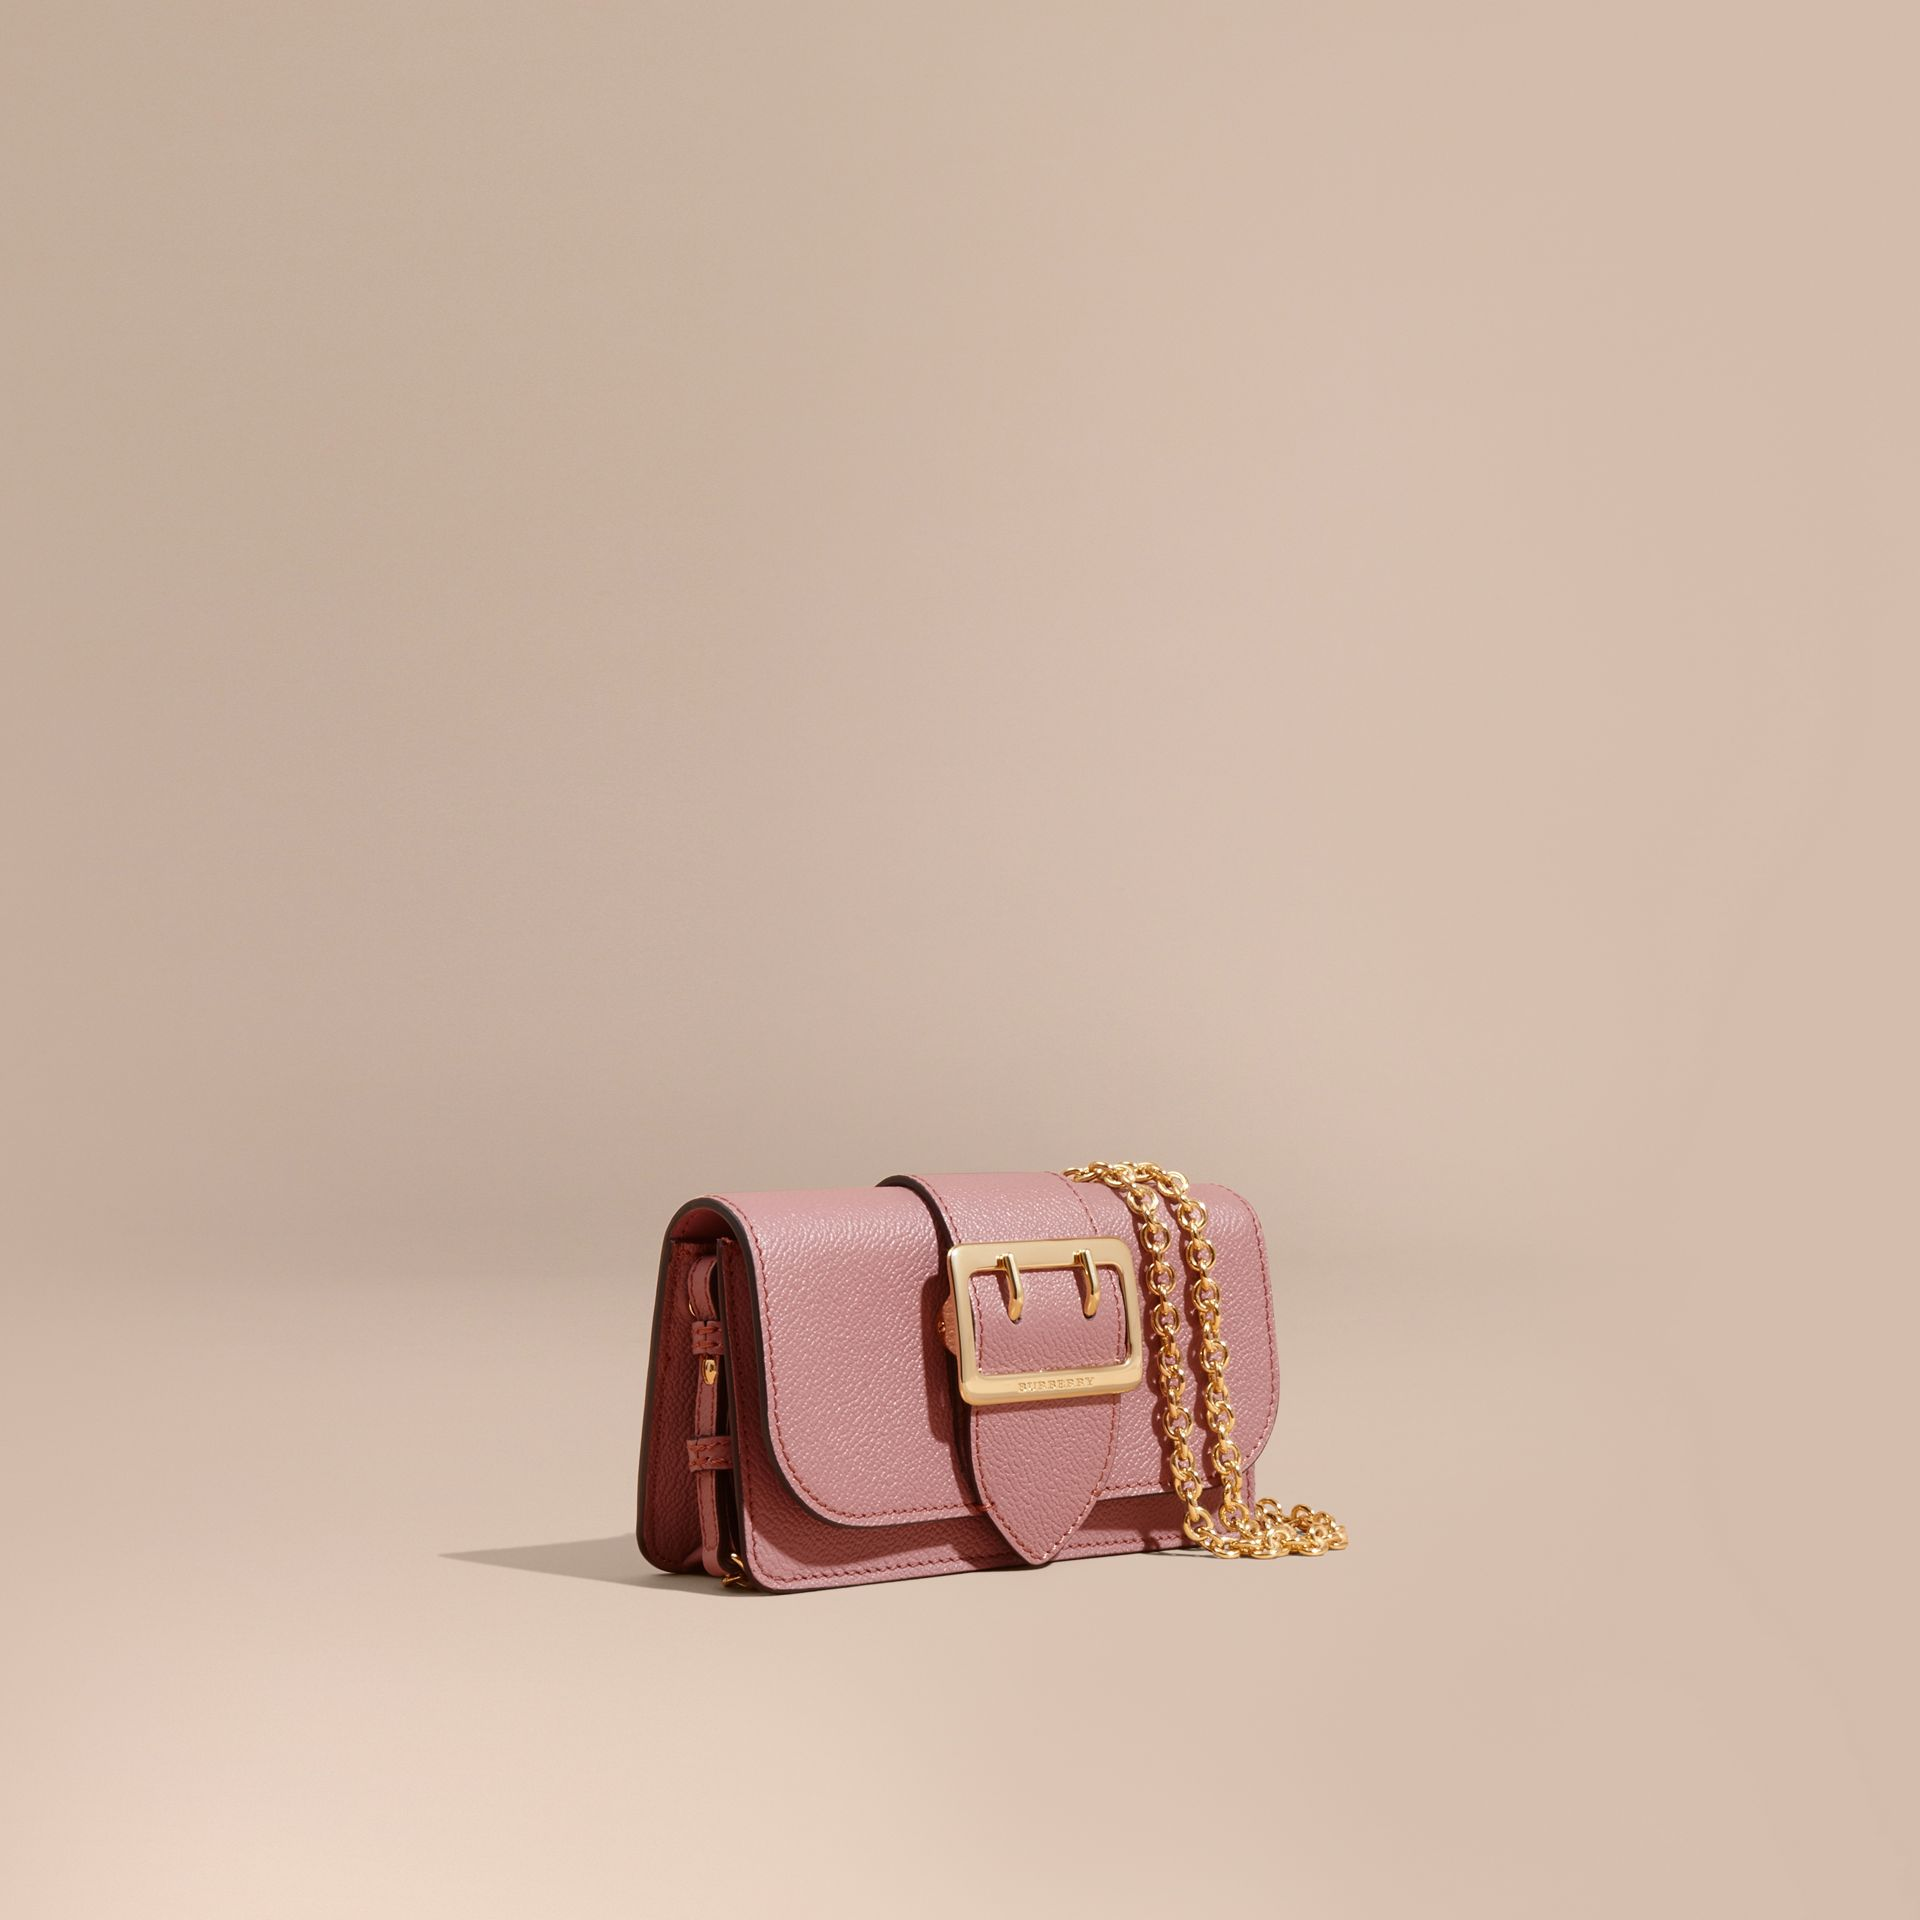 The Mini Buckle Bag in Grainy Leather in Dusty Pink - Women | Burberry Canada - gallery image 1